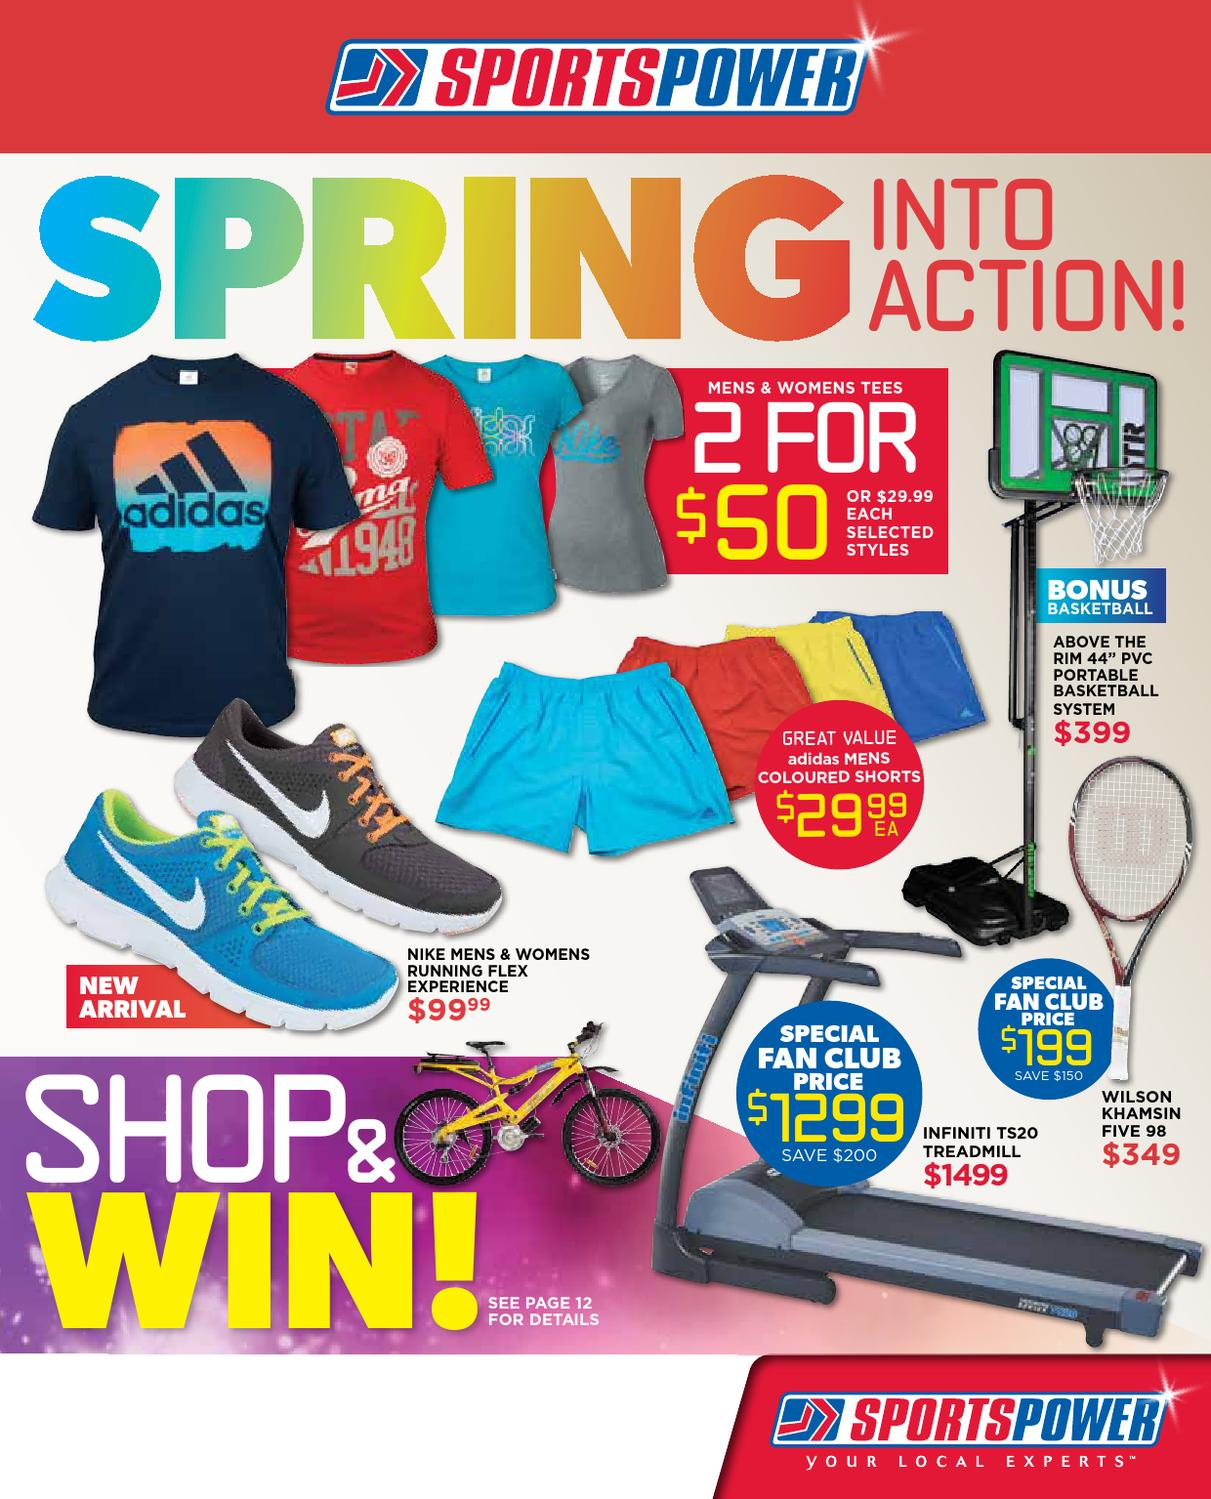 Sportspower Spring inot Action catalogue by Associated